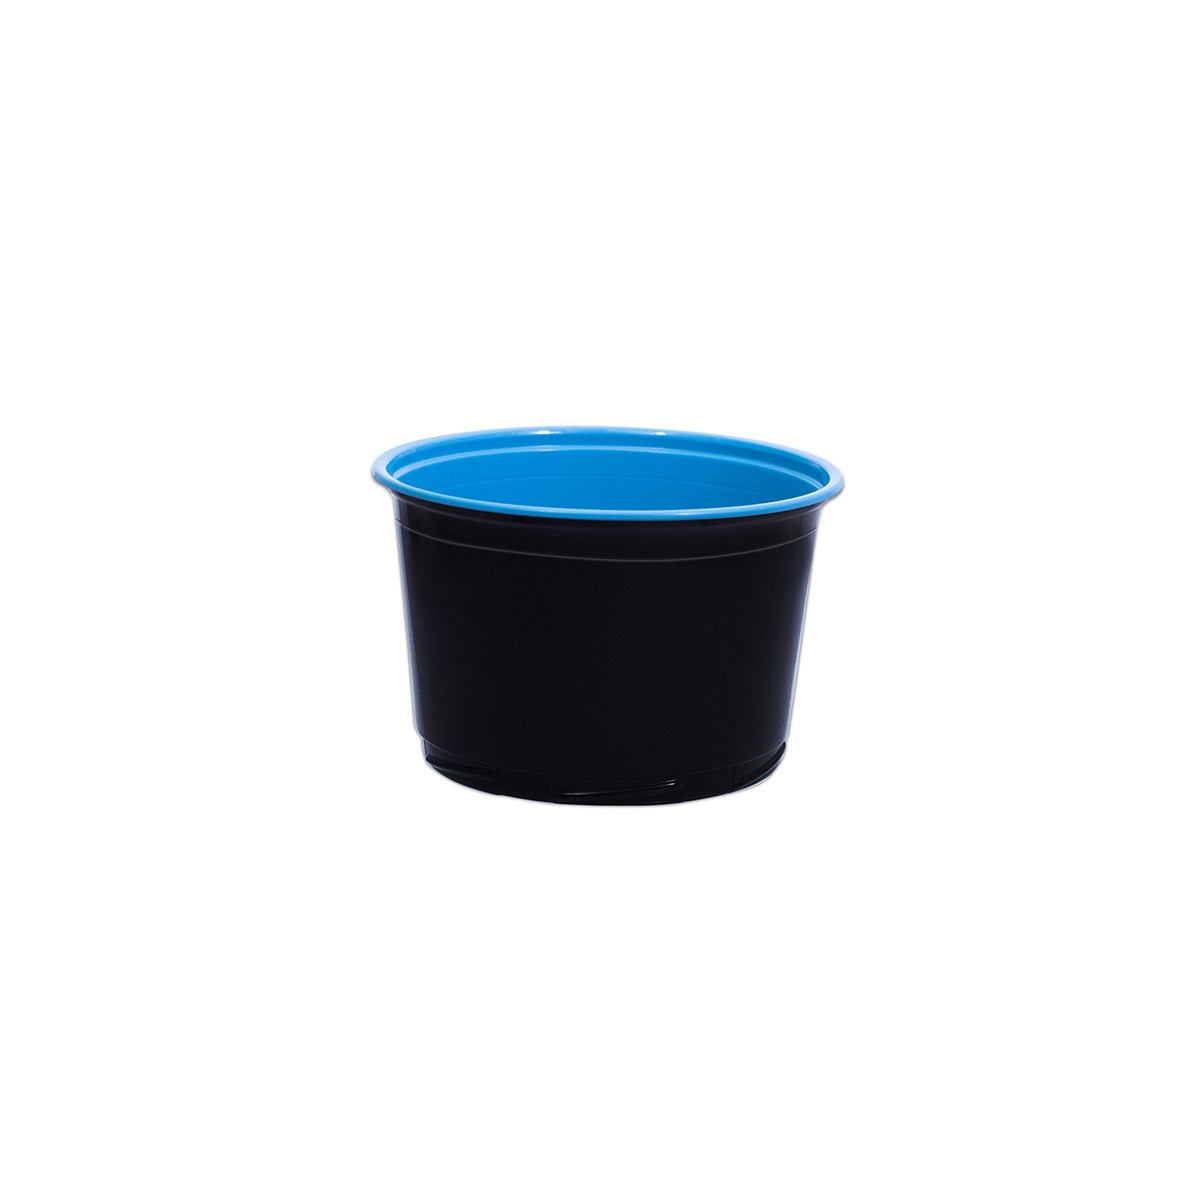 Towerpac Round Cont  w/ Screw Base 500cc - Black/Blue - PP